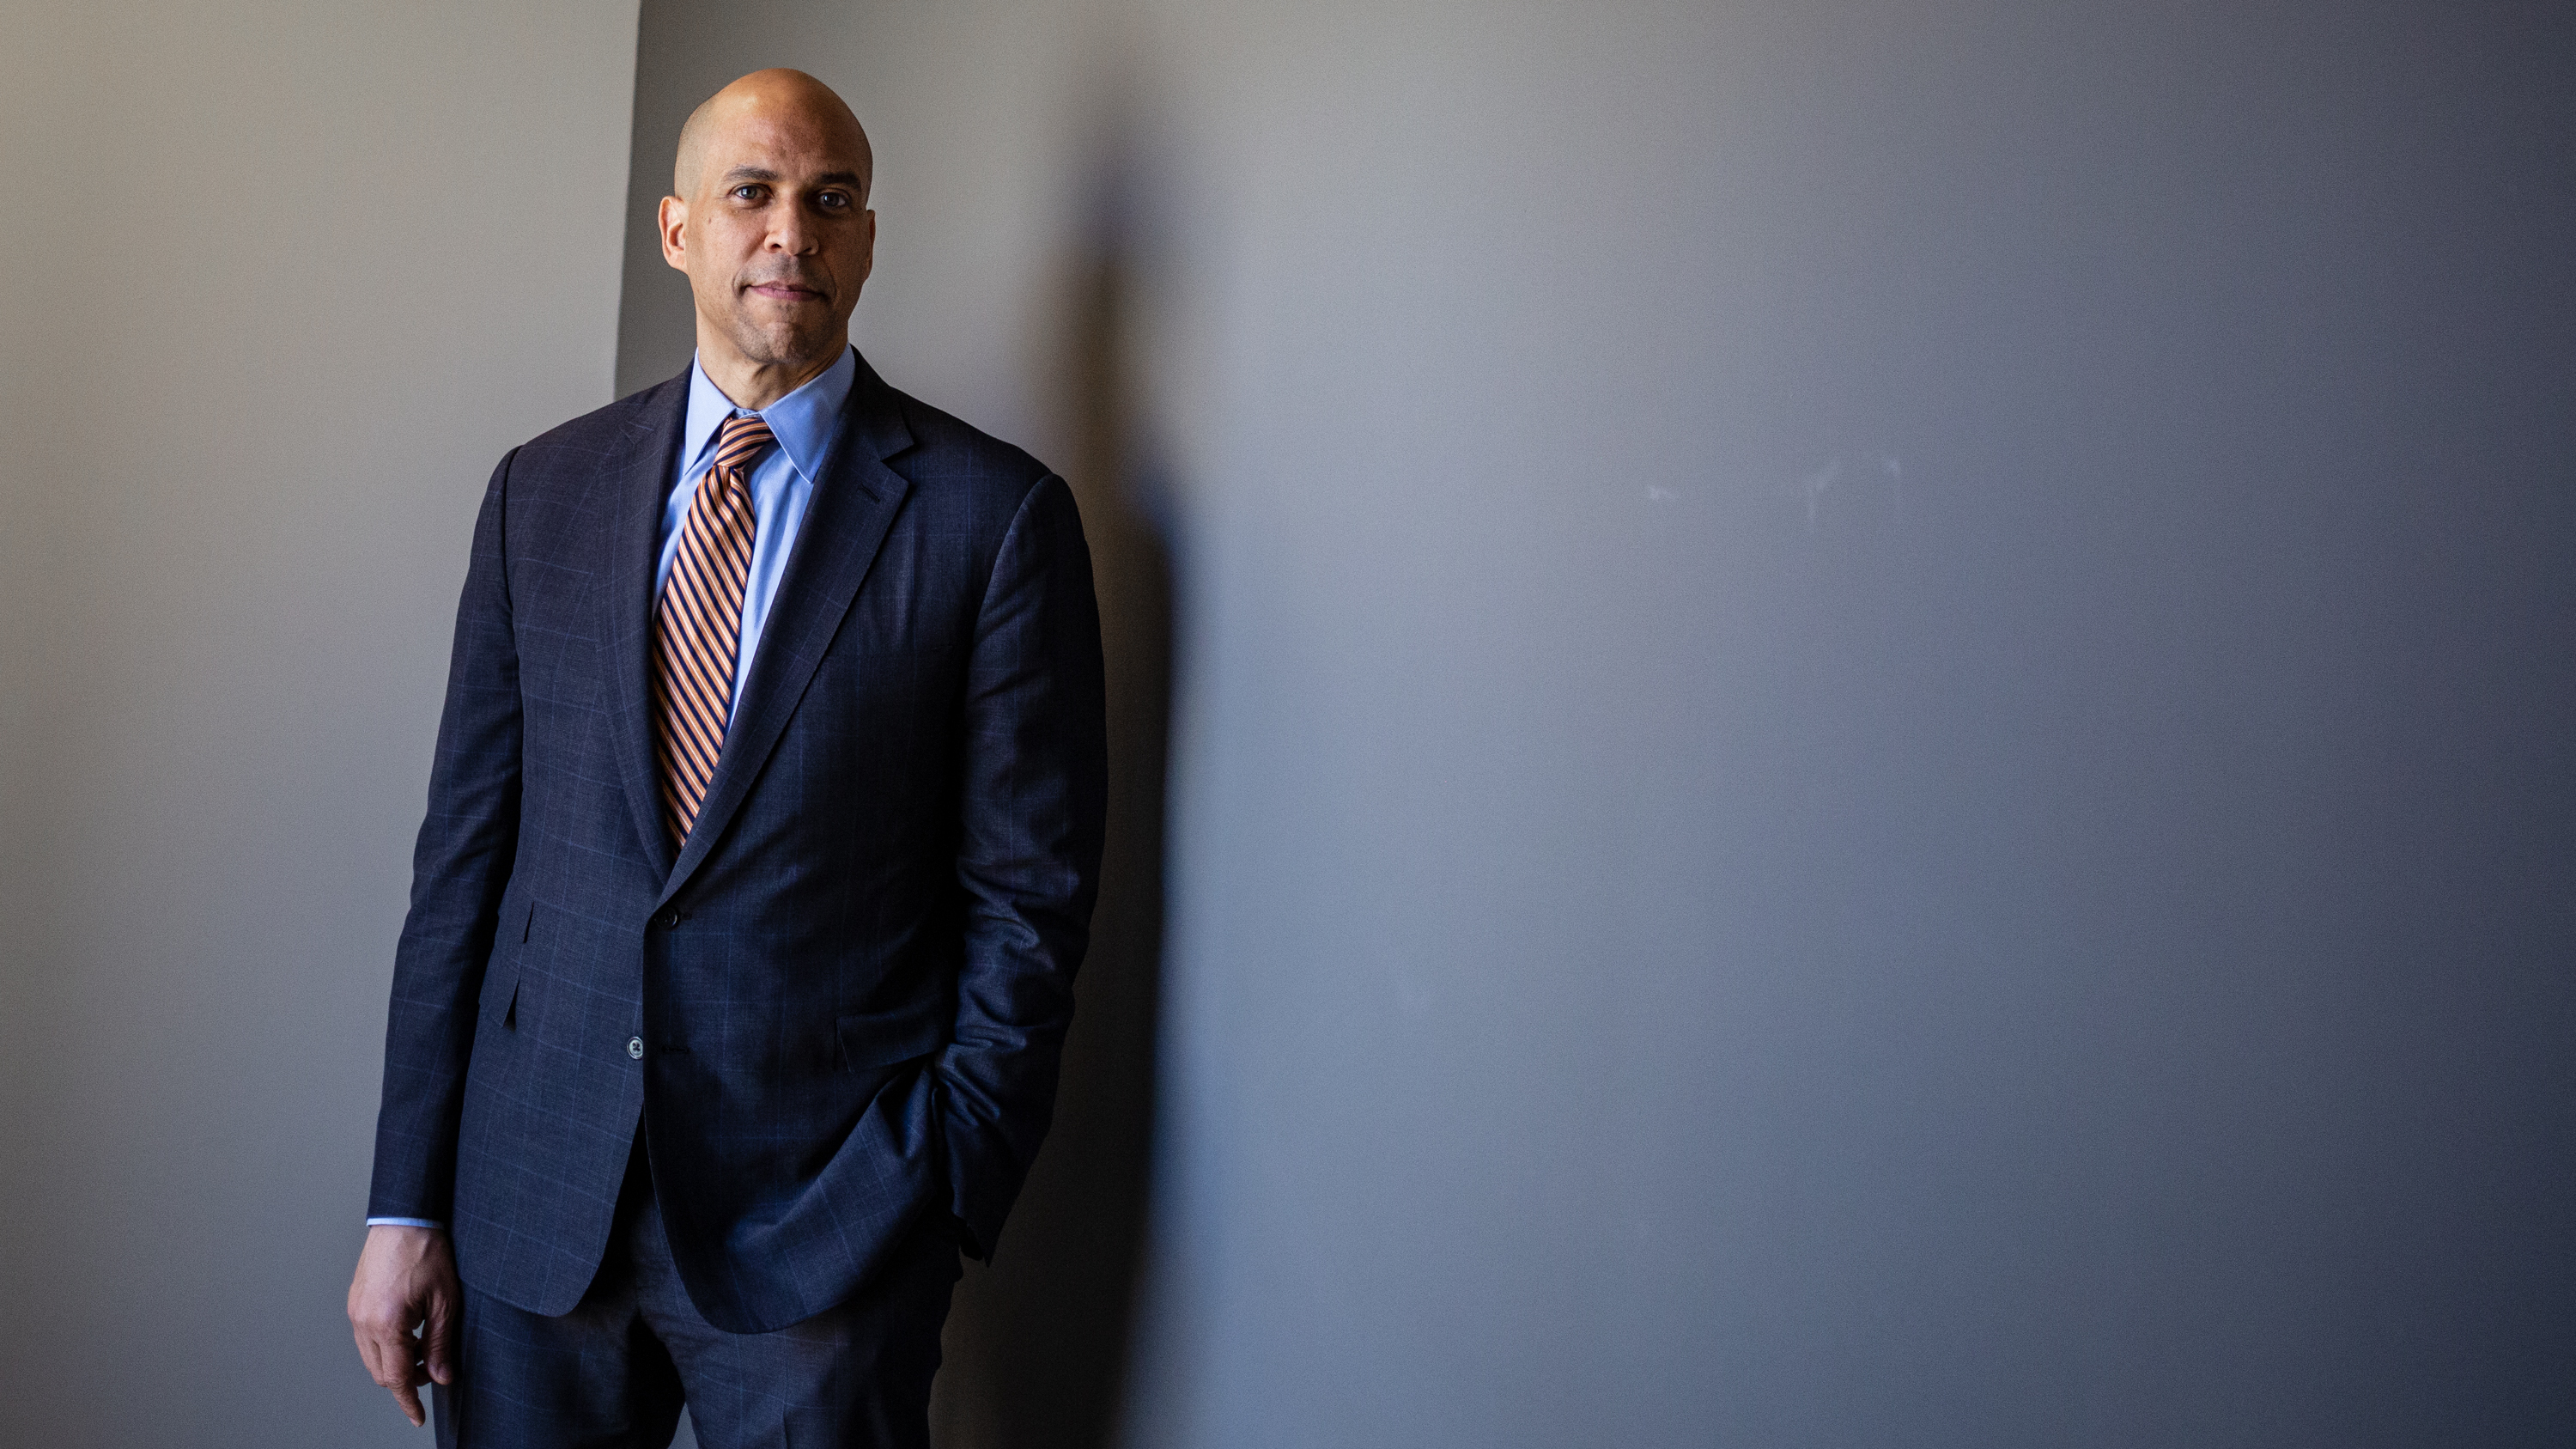 Sen. Cory Booker Promises To Bring America Together. But How?